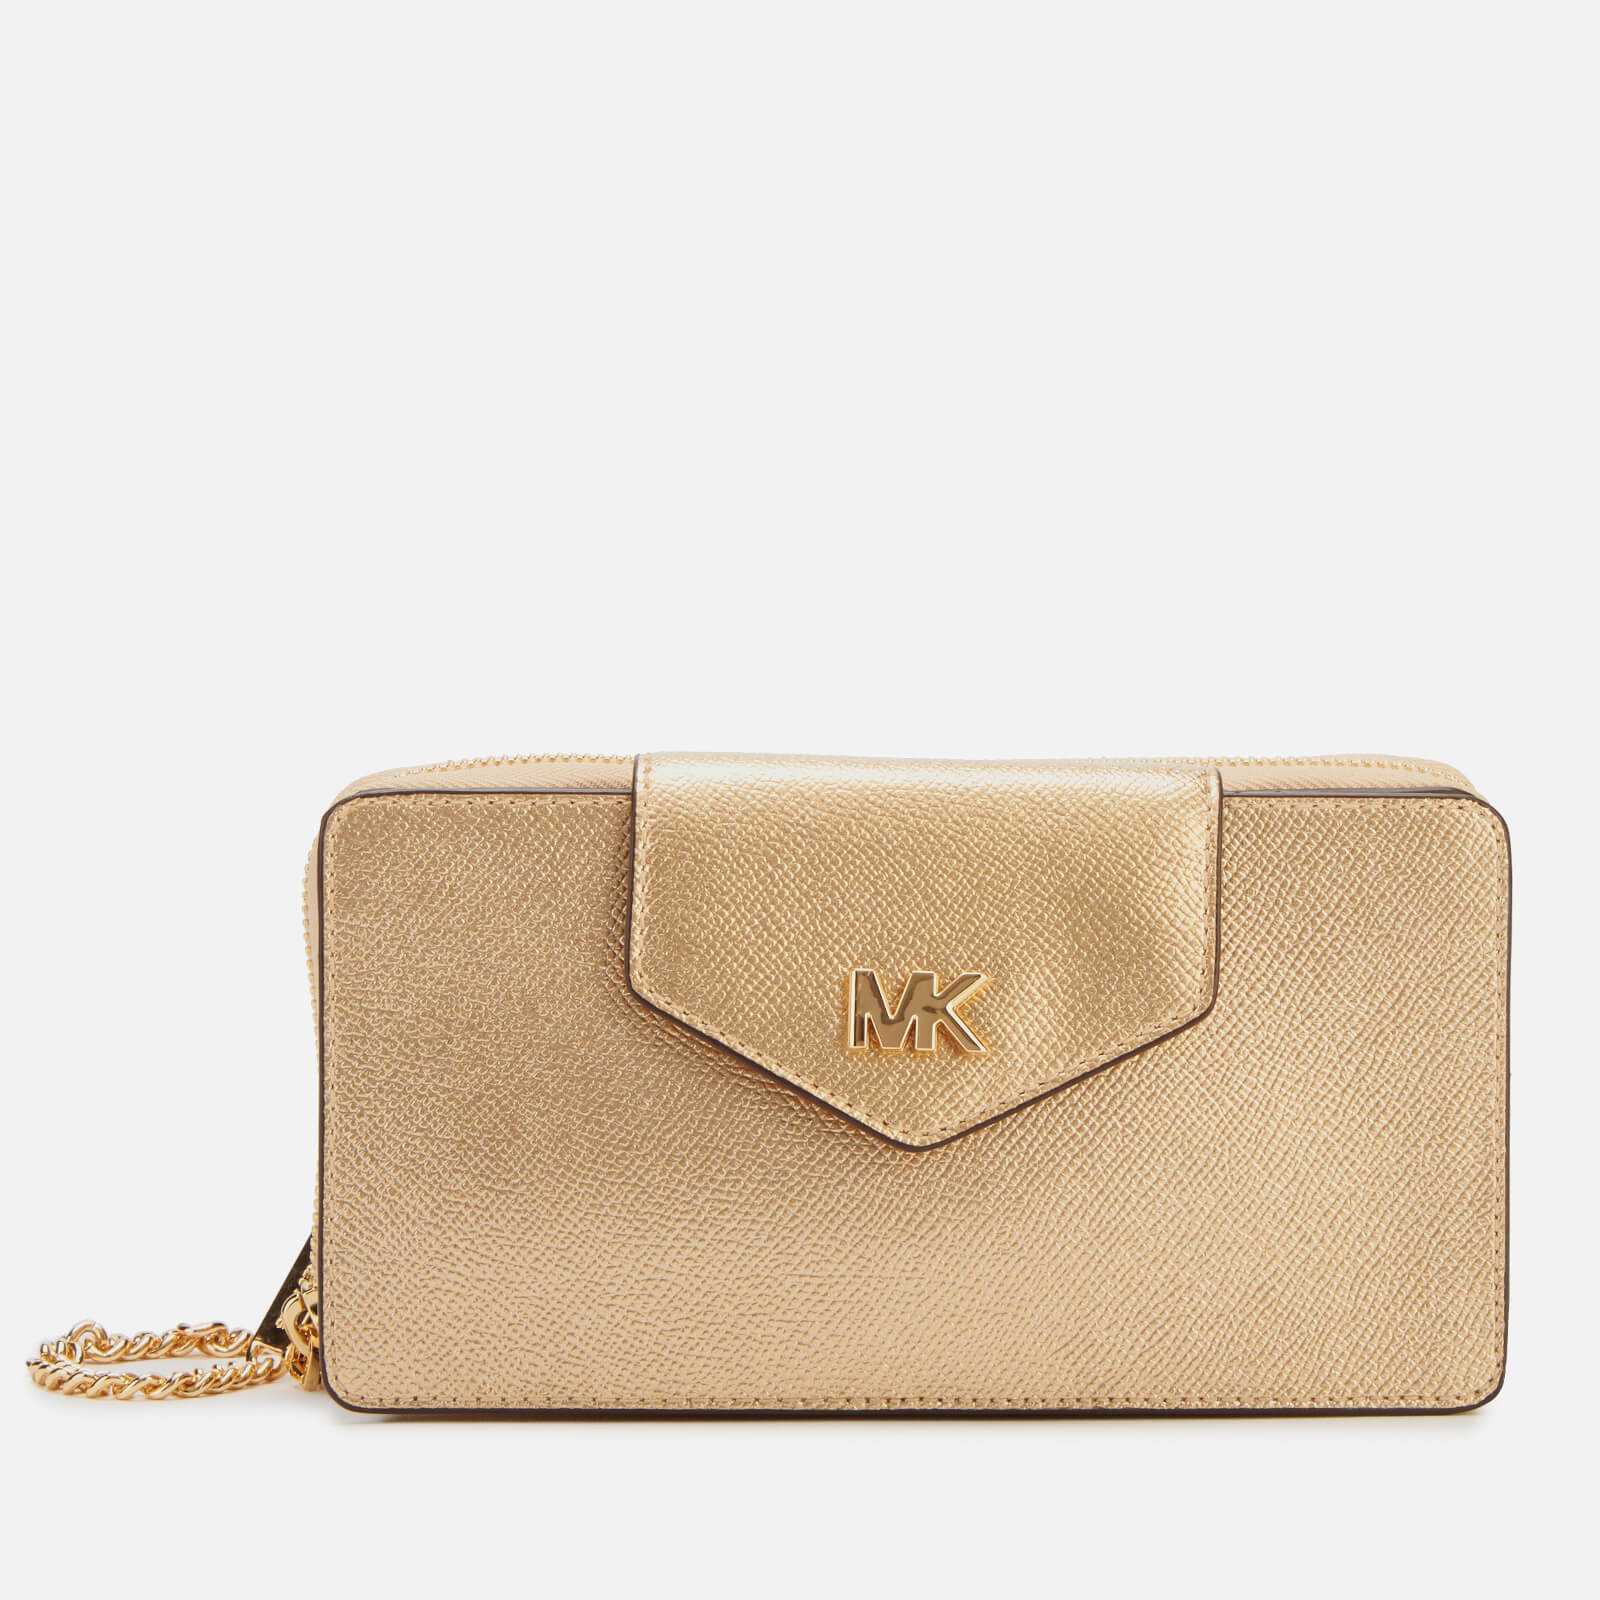 3313fa875906 MICHAEL MICHAEL KORS Women s Small Convertible Phone Cross Body Bag - Pale  Gold - Free UK Delivery over £50